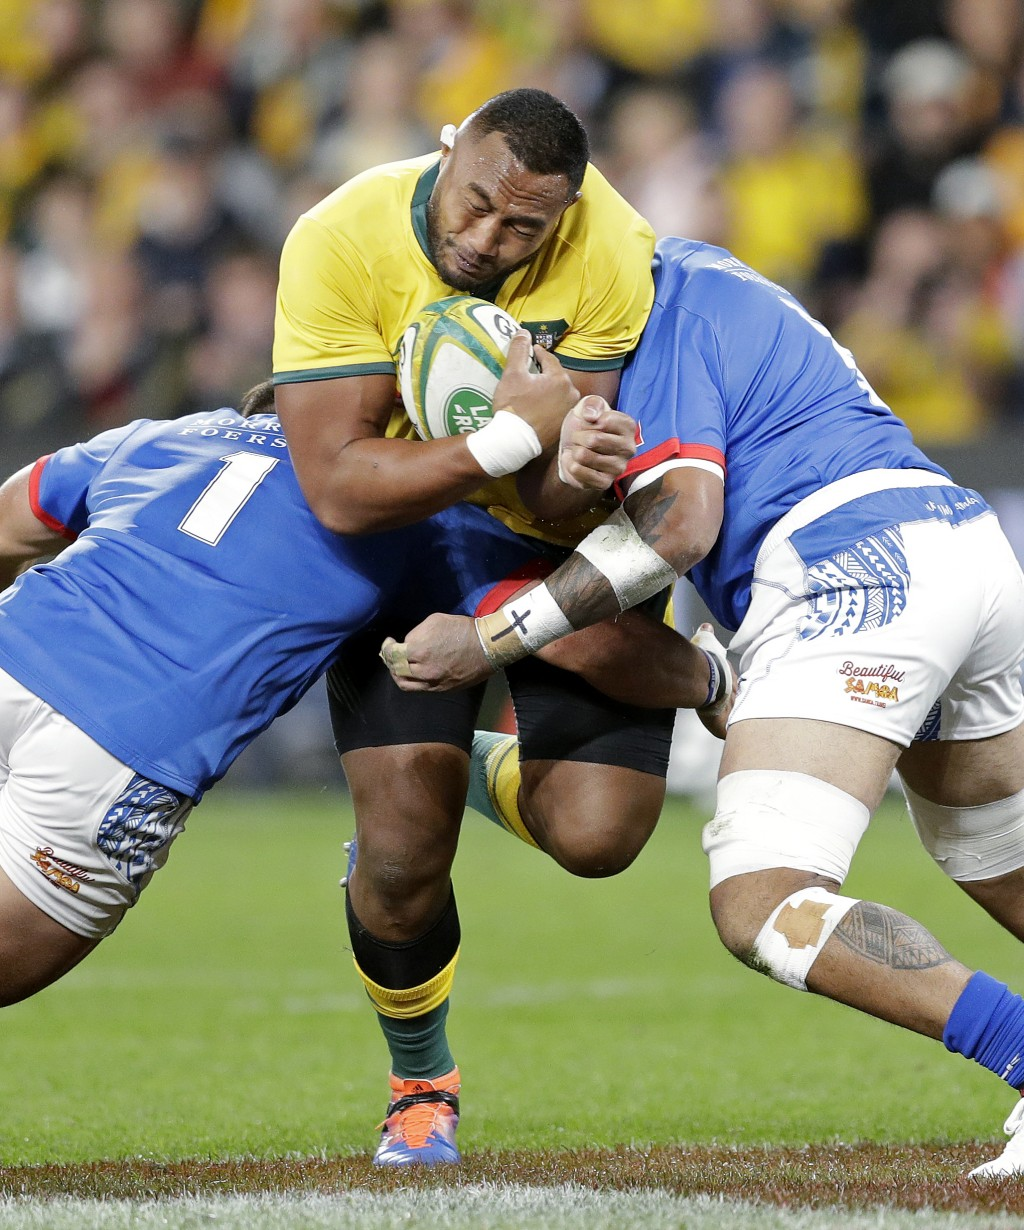 Australia's Sekope Kepu, center, is sandwiched by Samoa's Jordan Lay, left, and Afa Amosa during their rugby union test match in Sydney, Saturday, Sep